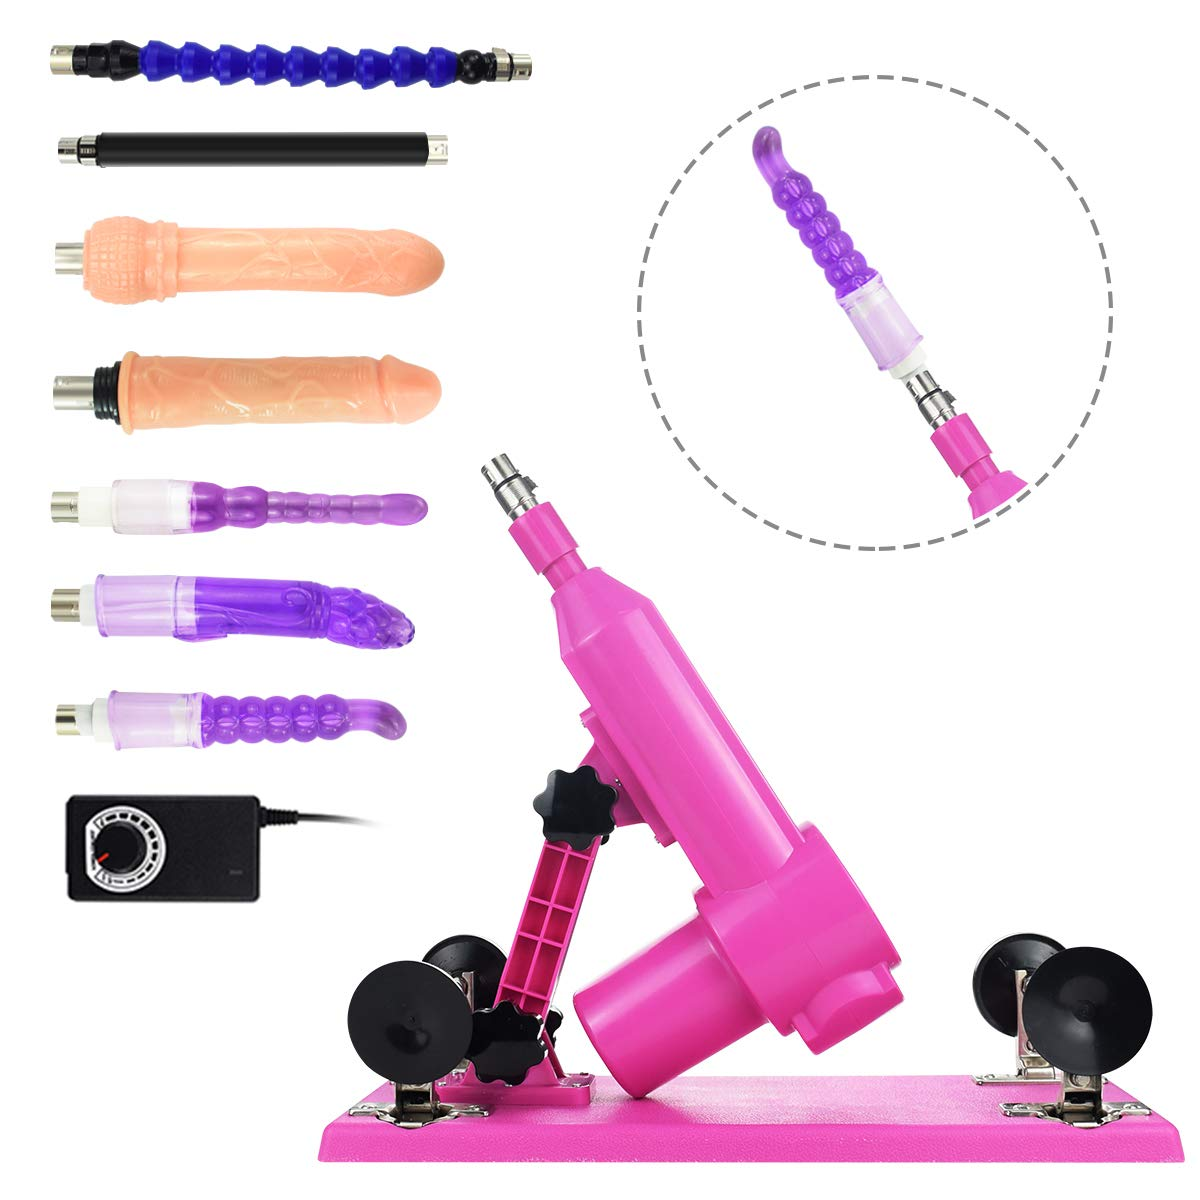 Auto Retractable Massage Tool Adult Machine Gun with 7 Attachments with Strong Power Motor